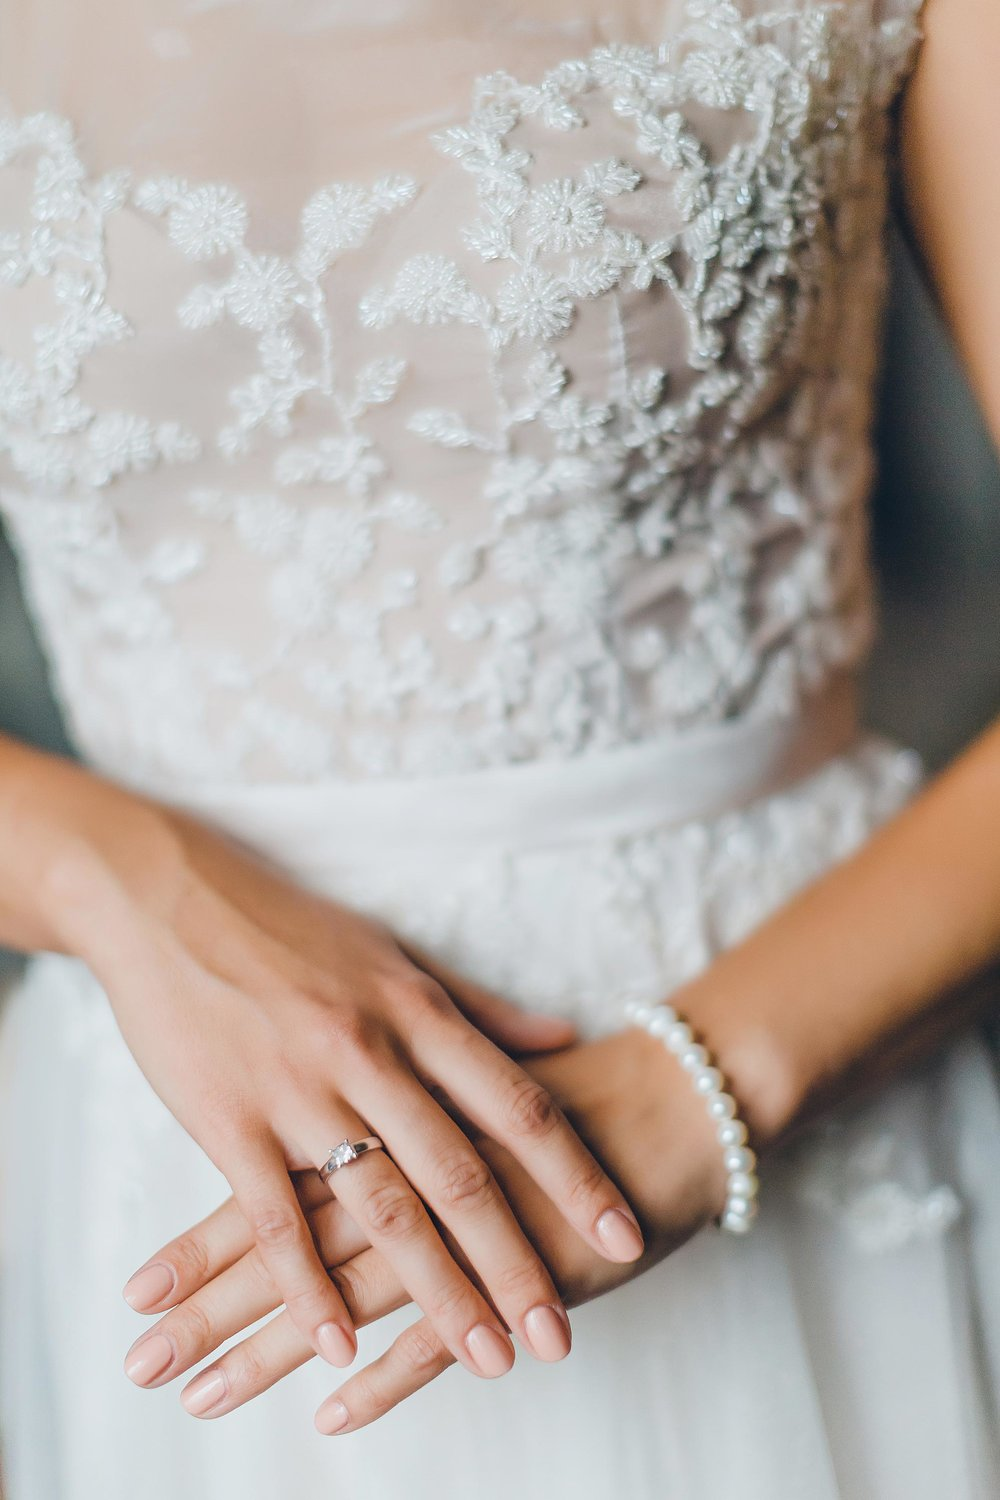 Matching Wedding Dress With Jewellery.jpg